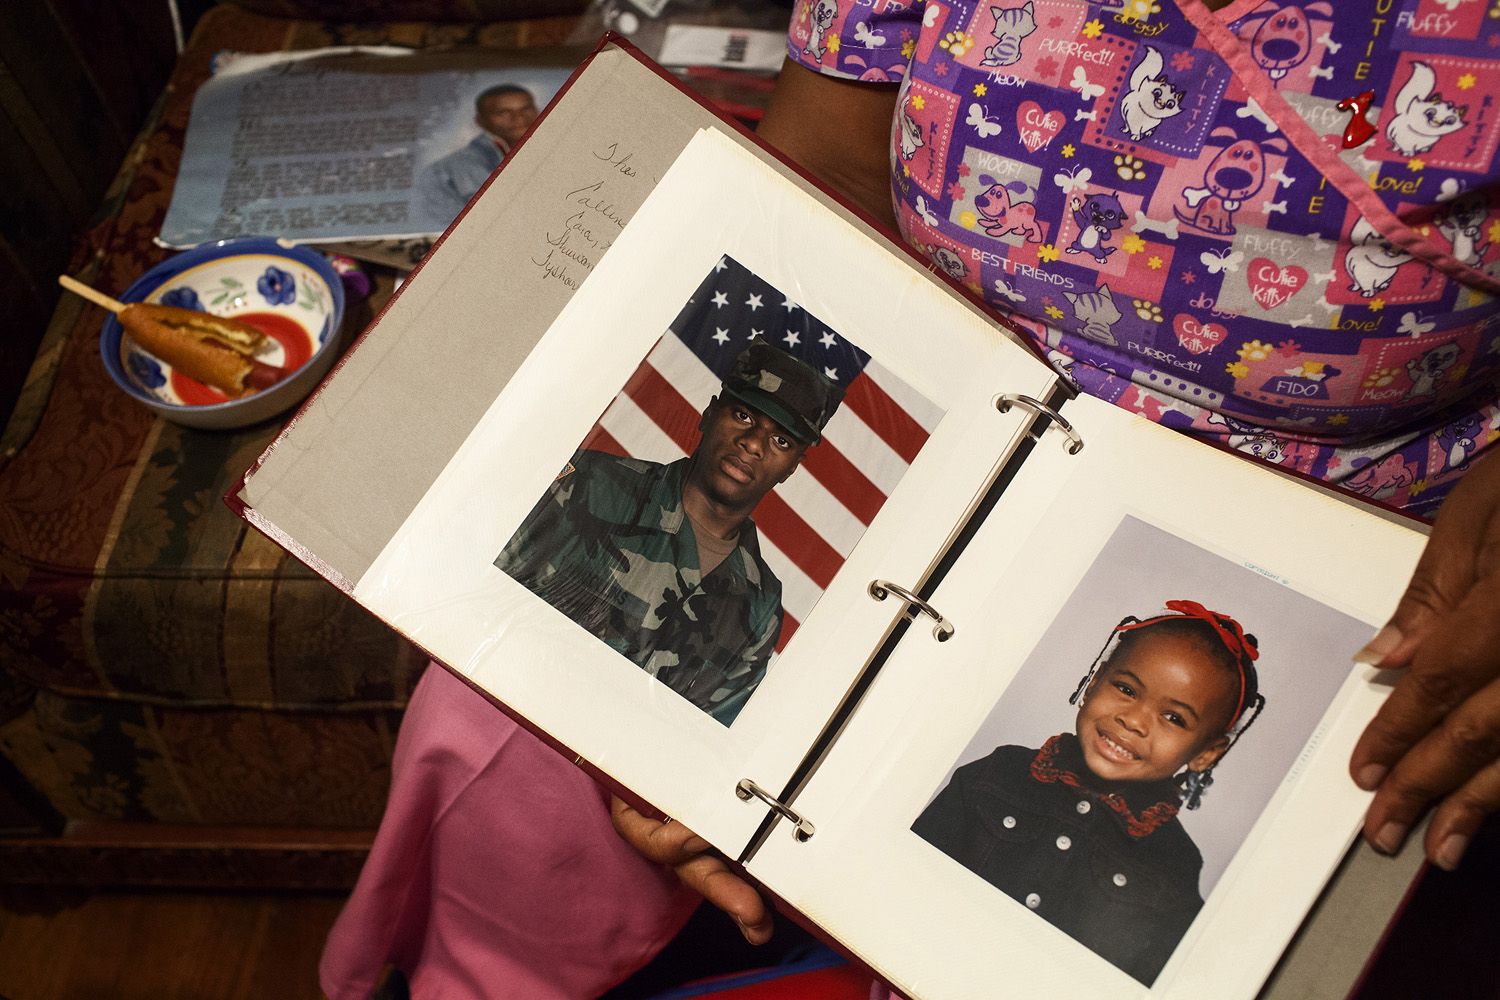 Kentrell served in the U.S. Army for several years after high school. He said he was out to a select few other service members who he knew to be gay as well.